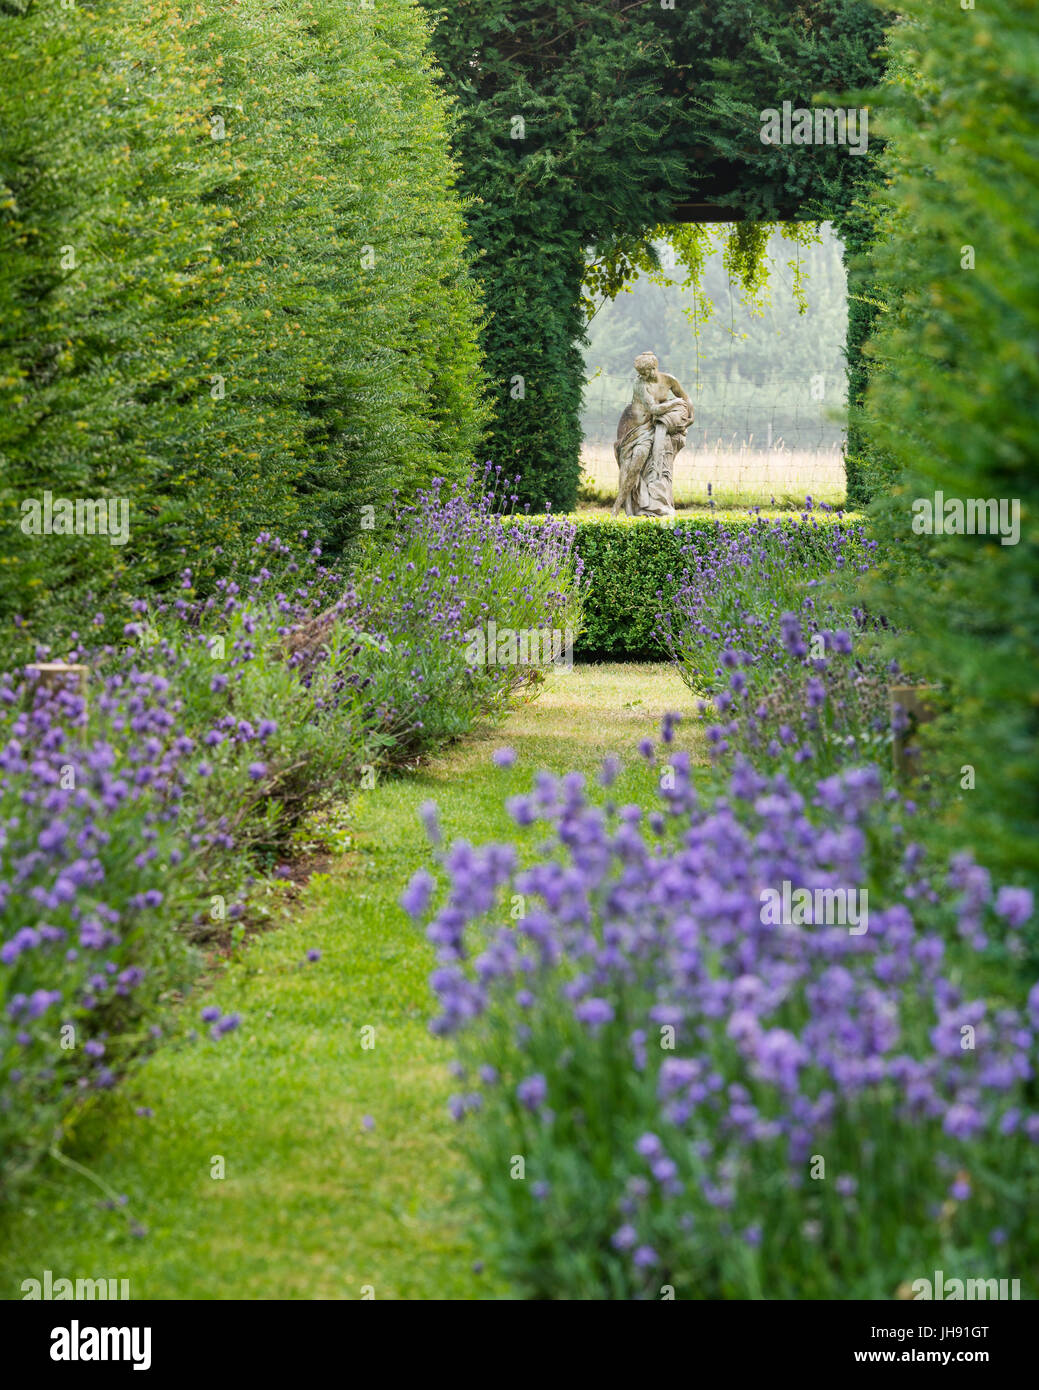 Sculpture of woman in garden with lavender - Stock Image